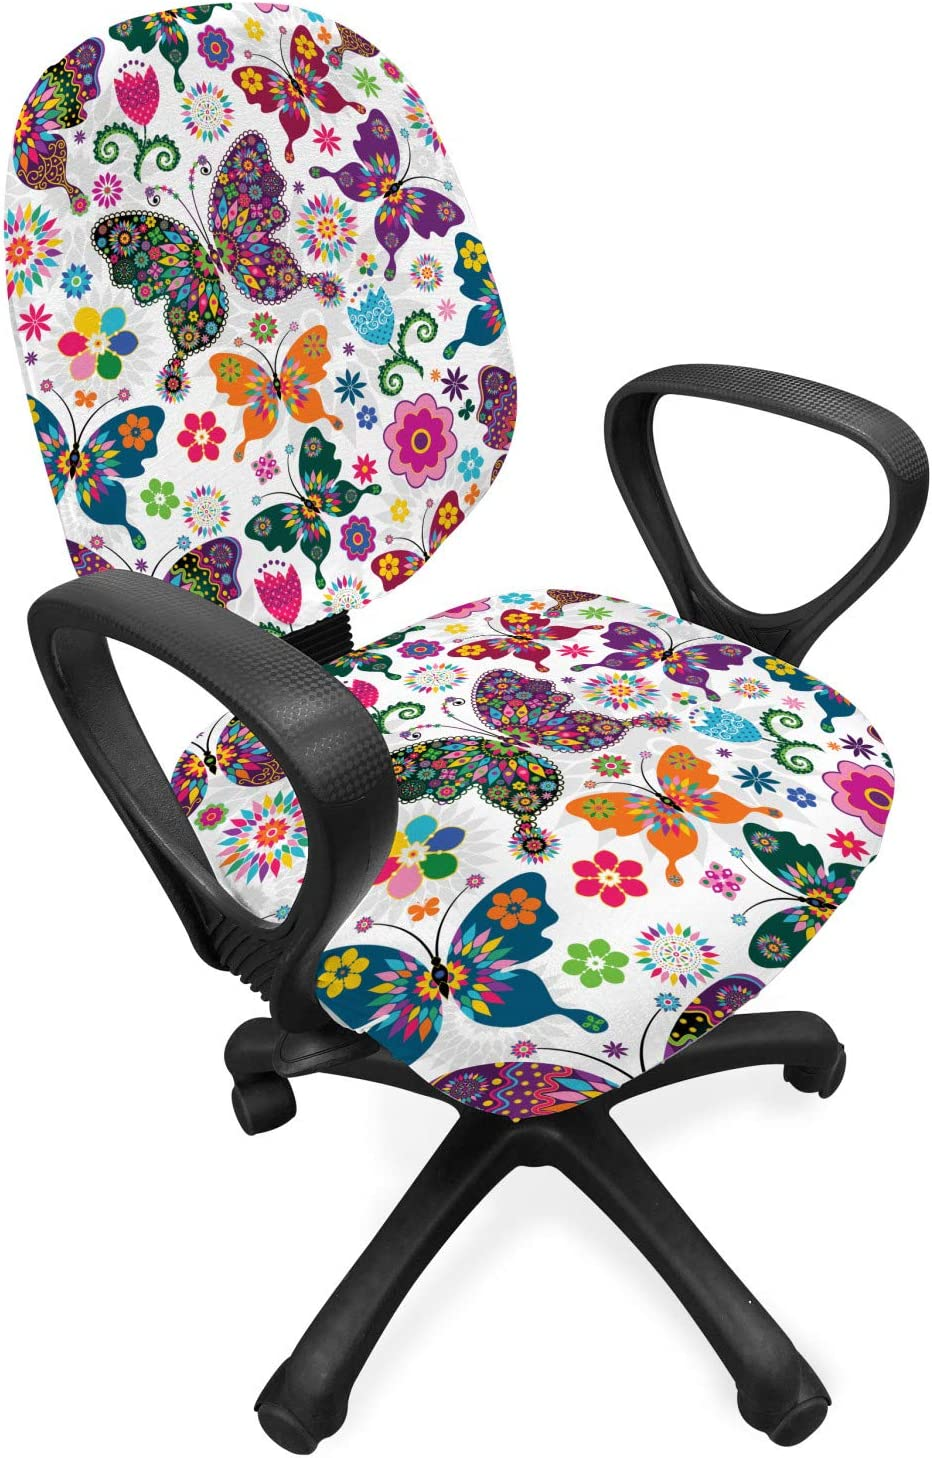 Ambesonne Butterfly Office Chair Slipcover, Sixties and Seventies Inspired Complex Image with Floral Elements and Butterflies, Protective Stretch Decorative Fabric Cover, Standard Size, White Pink